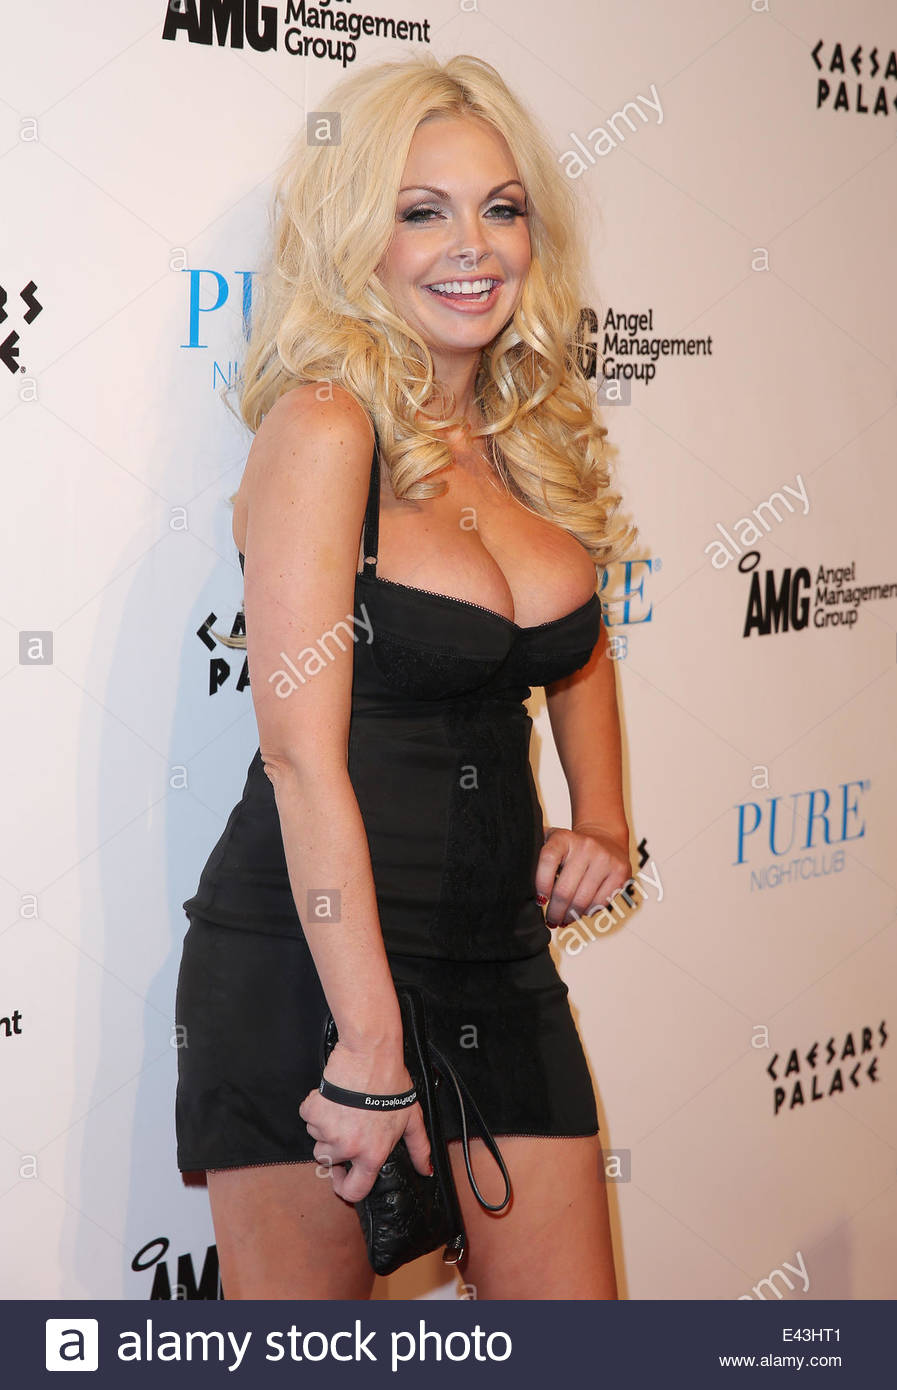 Jesse Jane Wallpaper